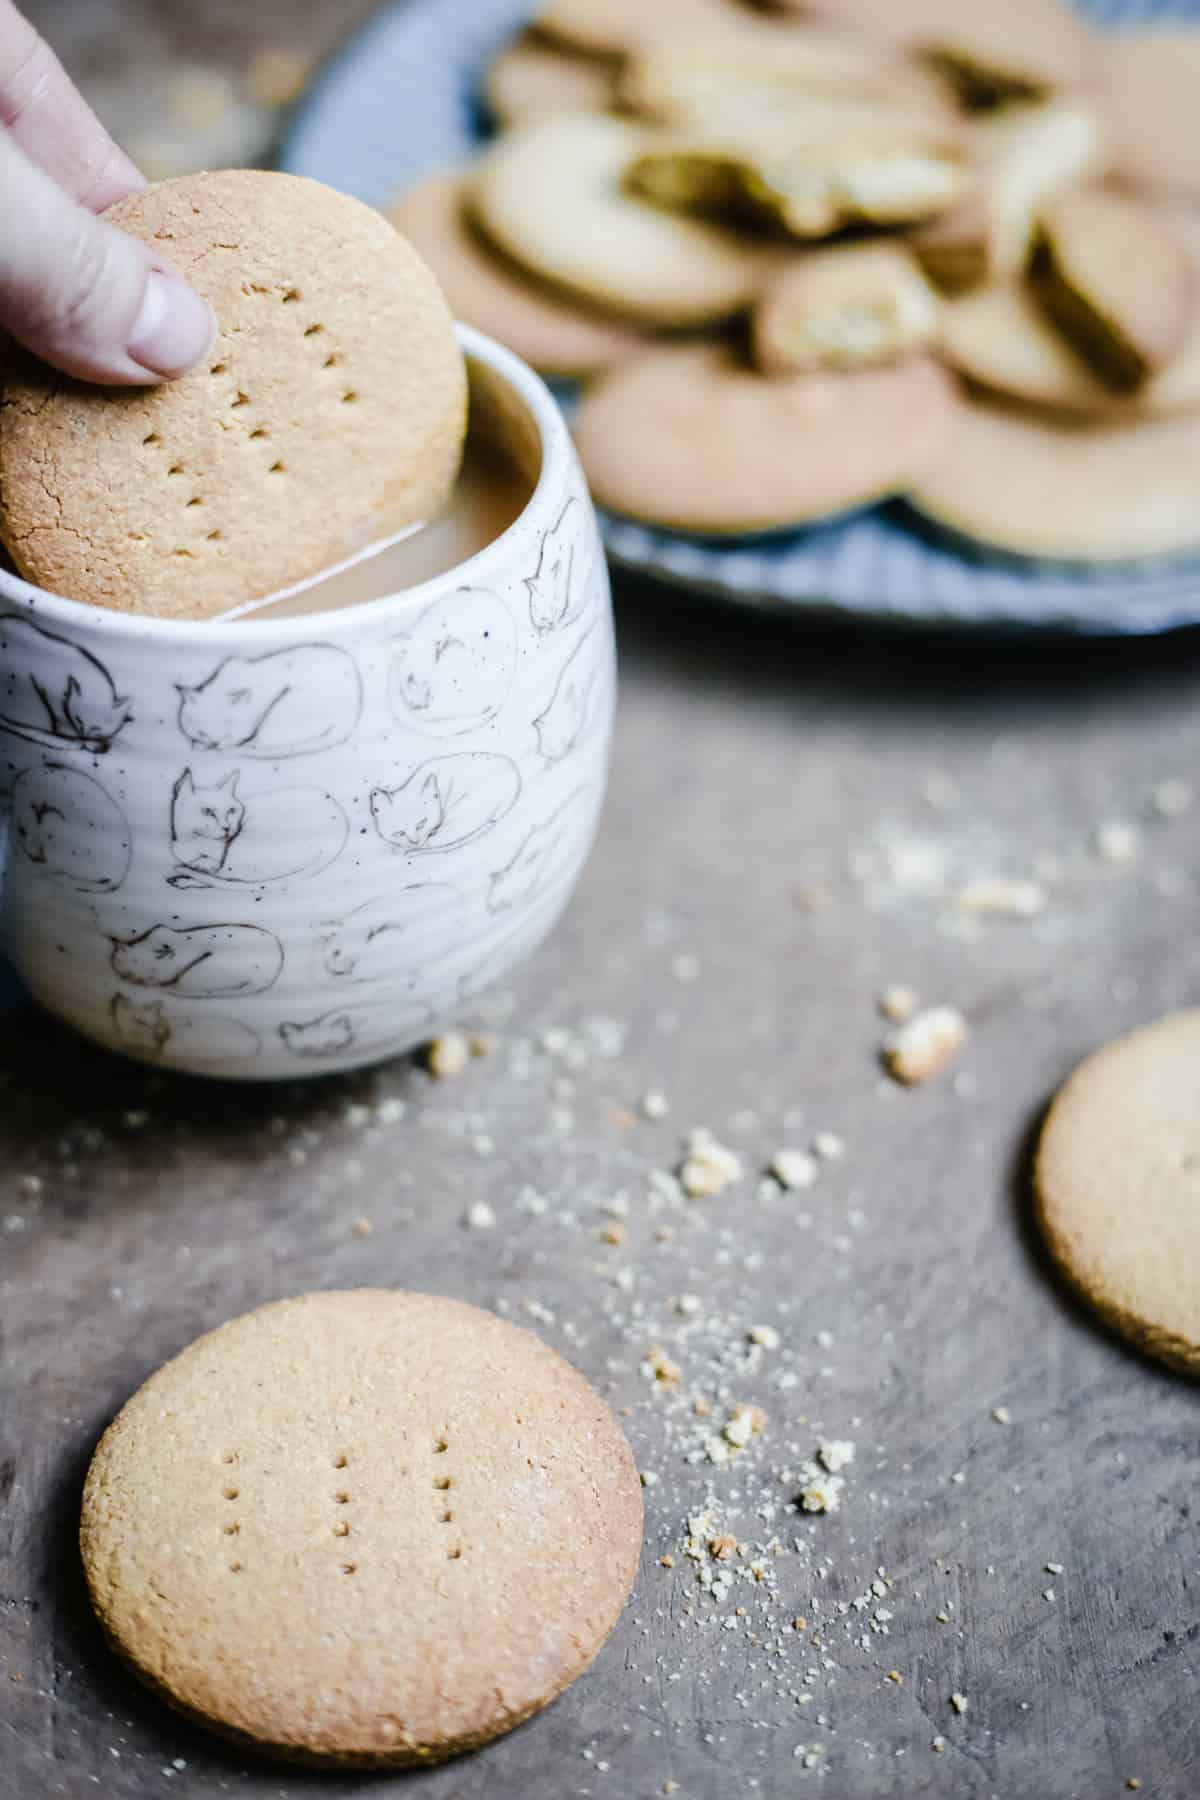 hand dunking a gluten-free digestive biscuit into a mug of tea next to a plate of biscuits